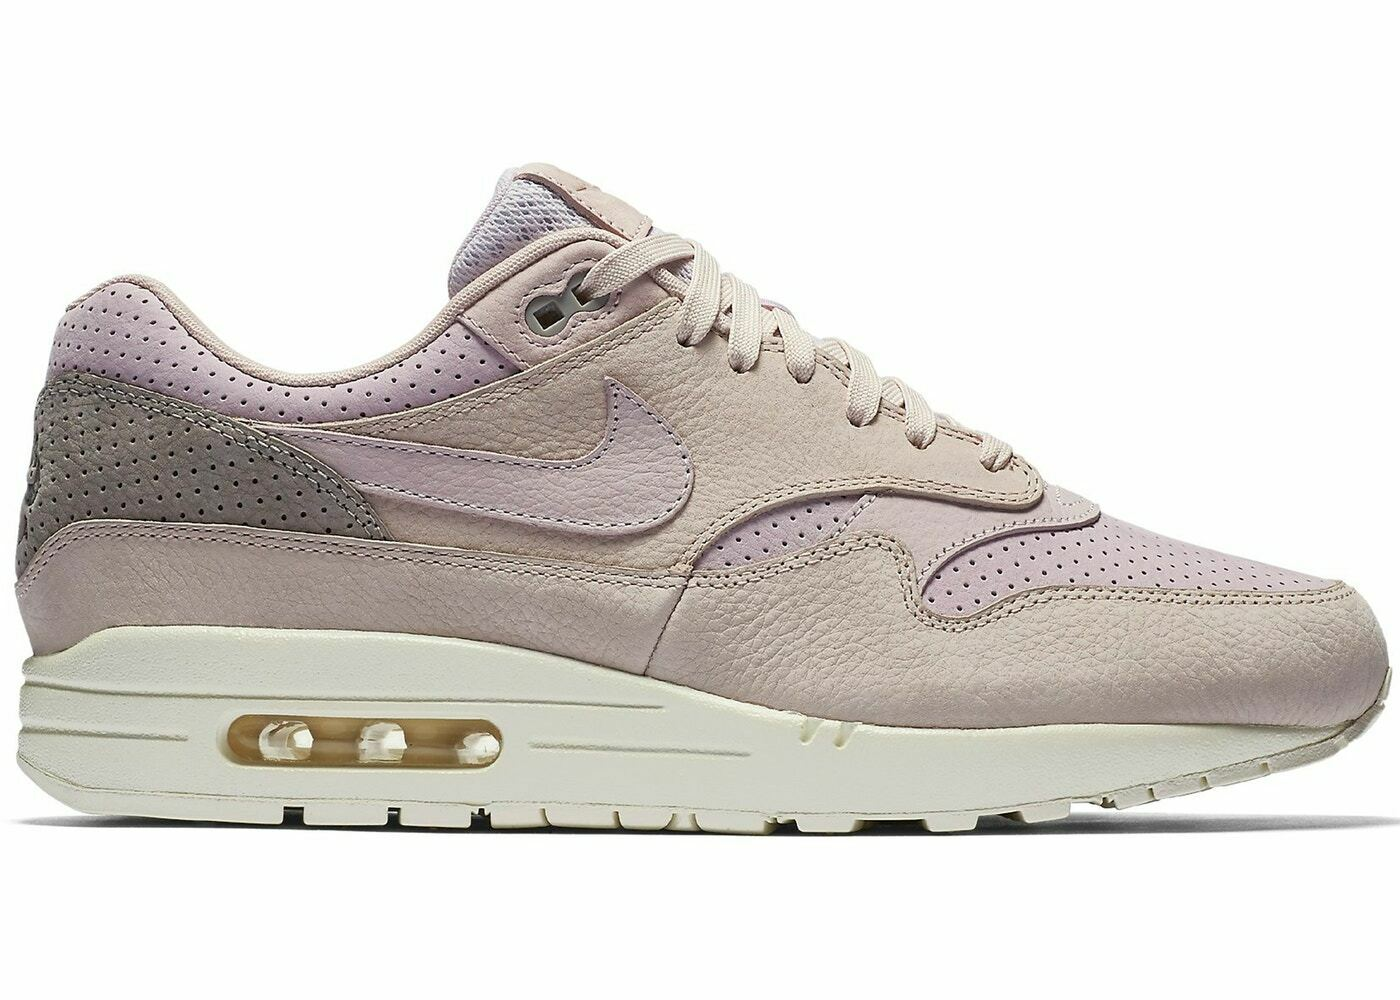 c9019543d3 NIKELAB AIR MAX 1 PINNACLE SILT RED PINK SIZE 10.5 NEW RARE SHOES (859554-